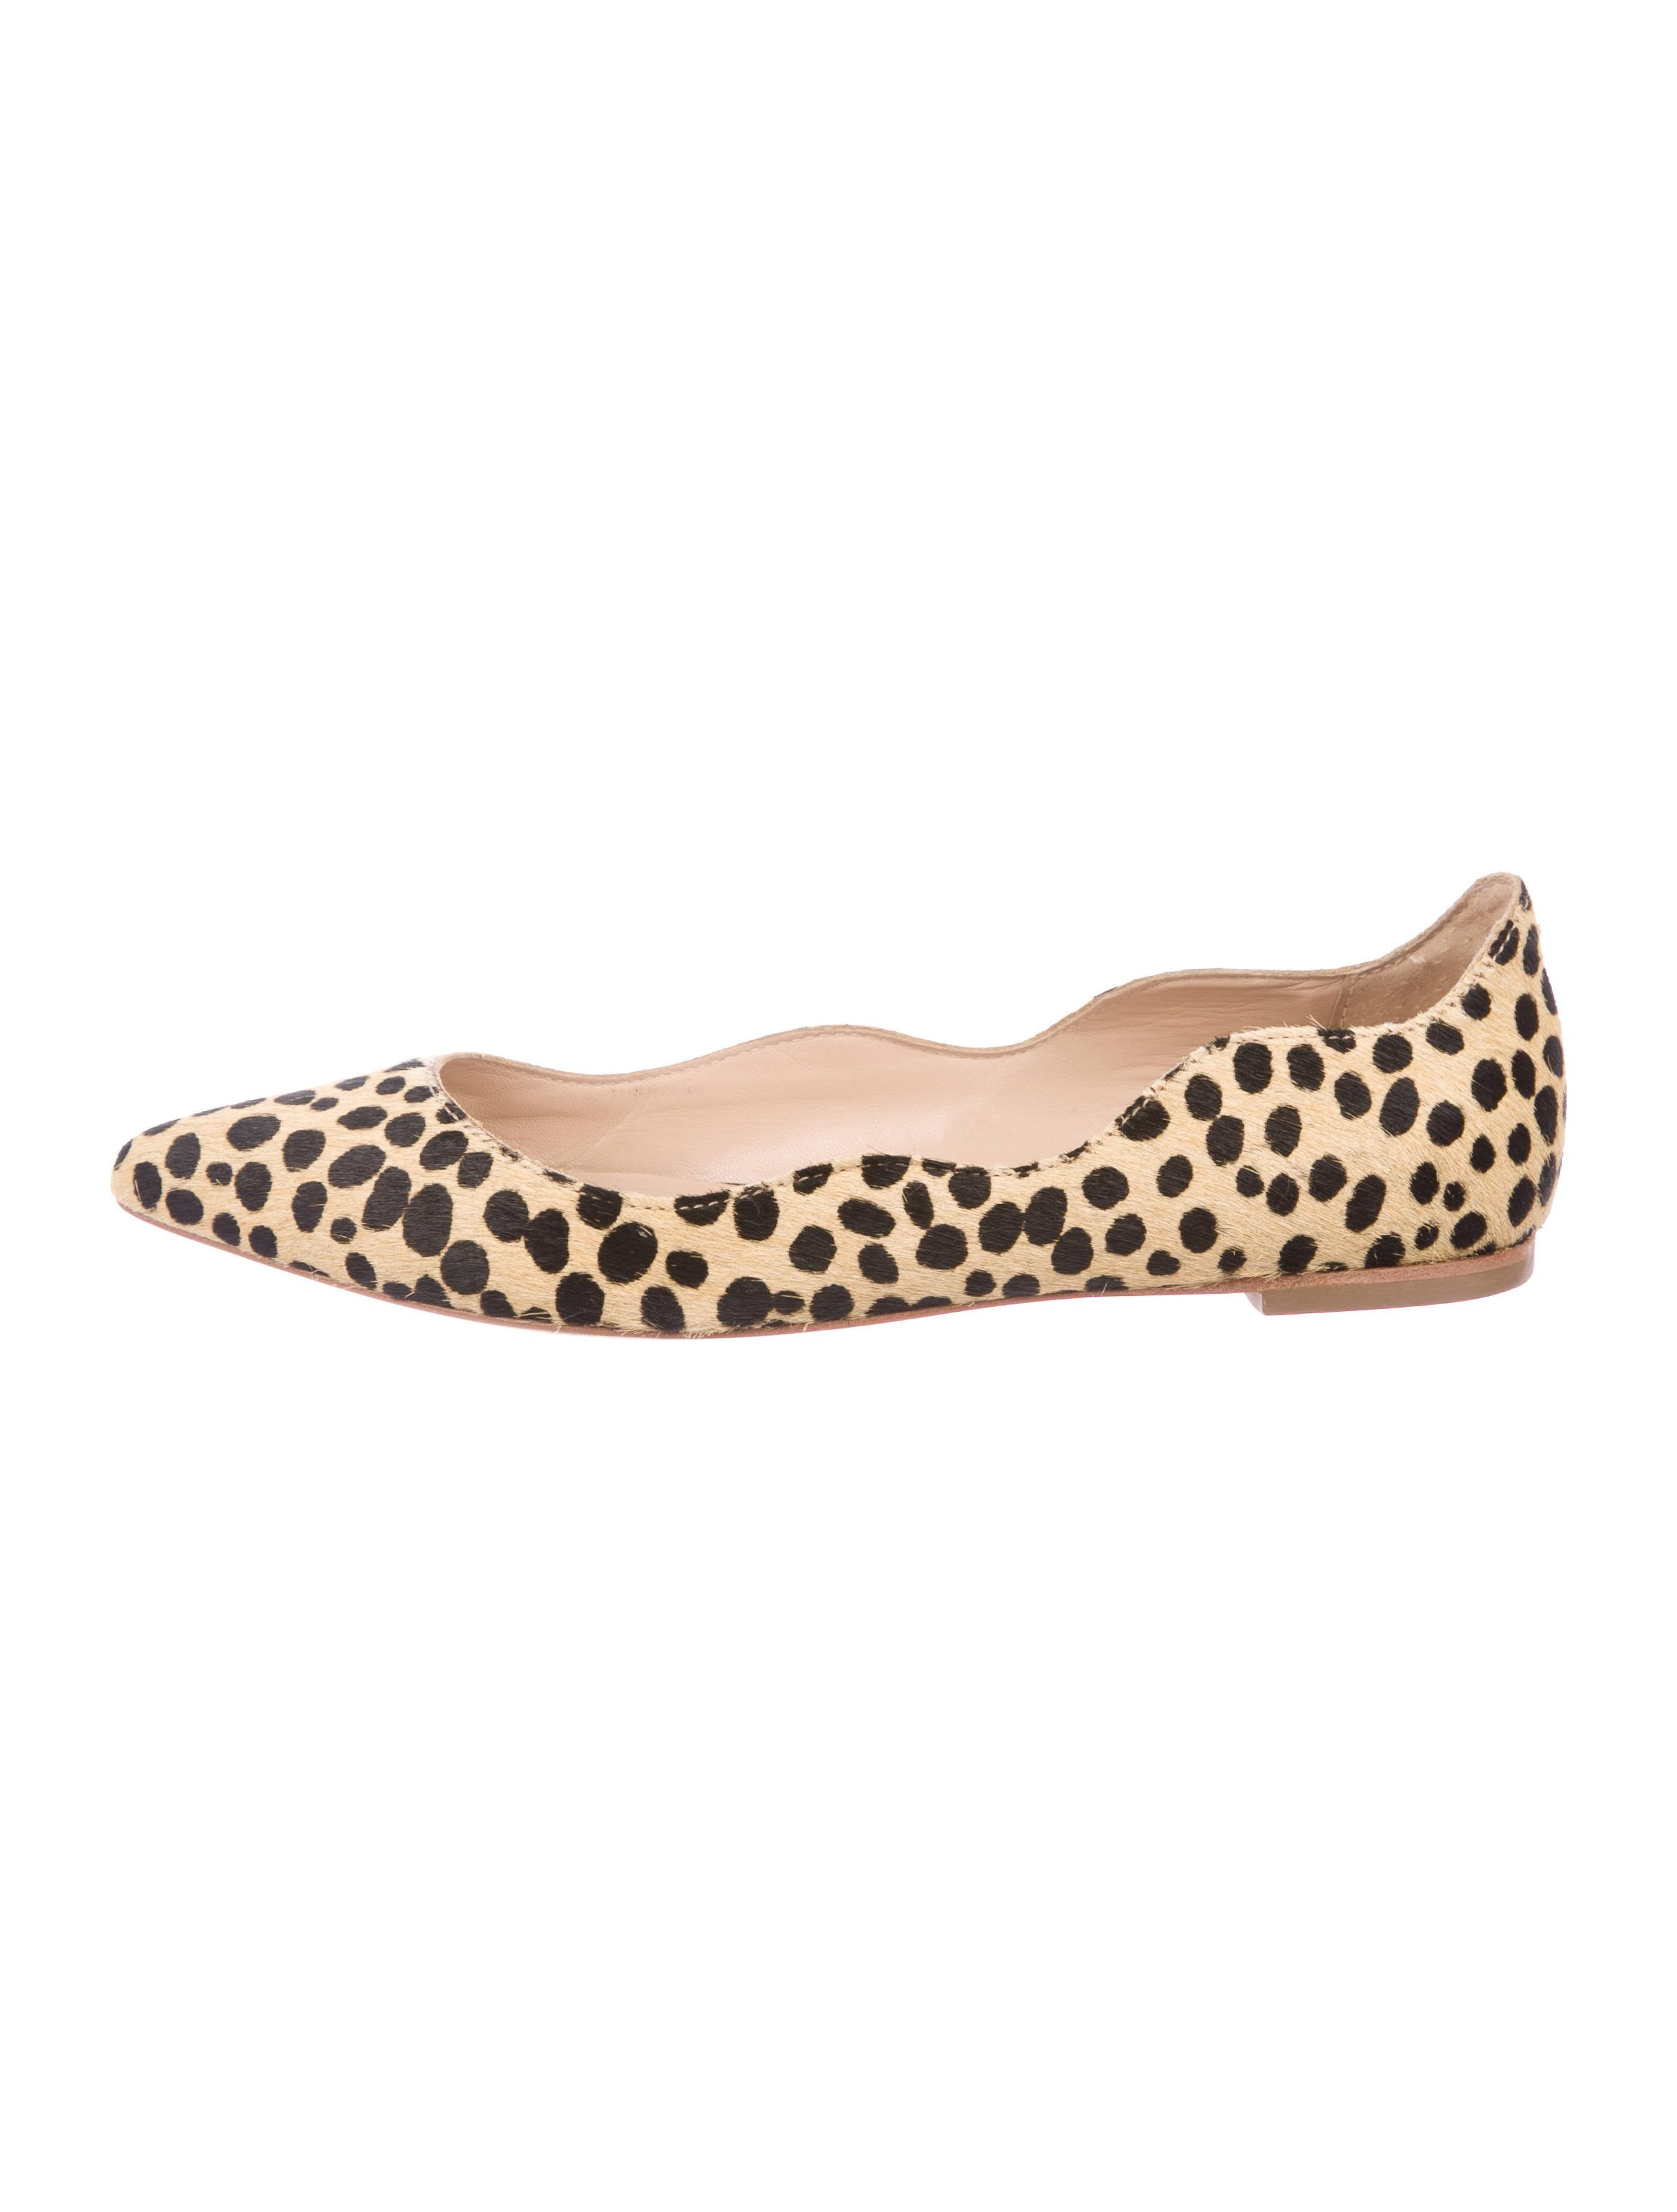 free shipping outlet locations cheap hot sale Loeffler Randall Cheetah Print Ponyhair Flats free shipping fashionable for sale discount sale sale the cheapest hZfNY